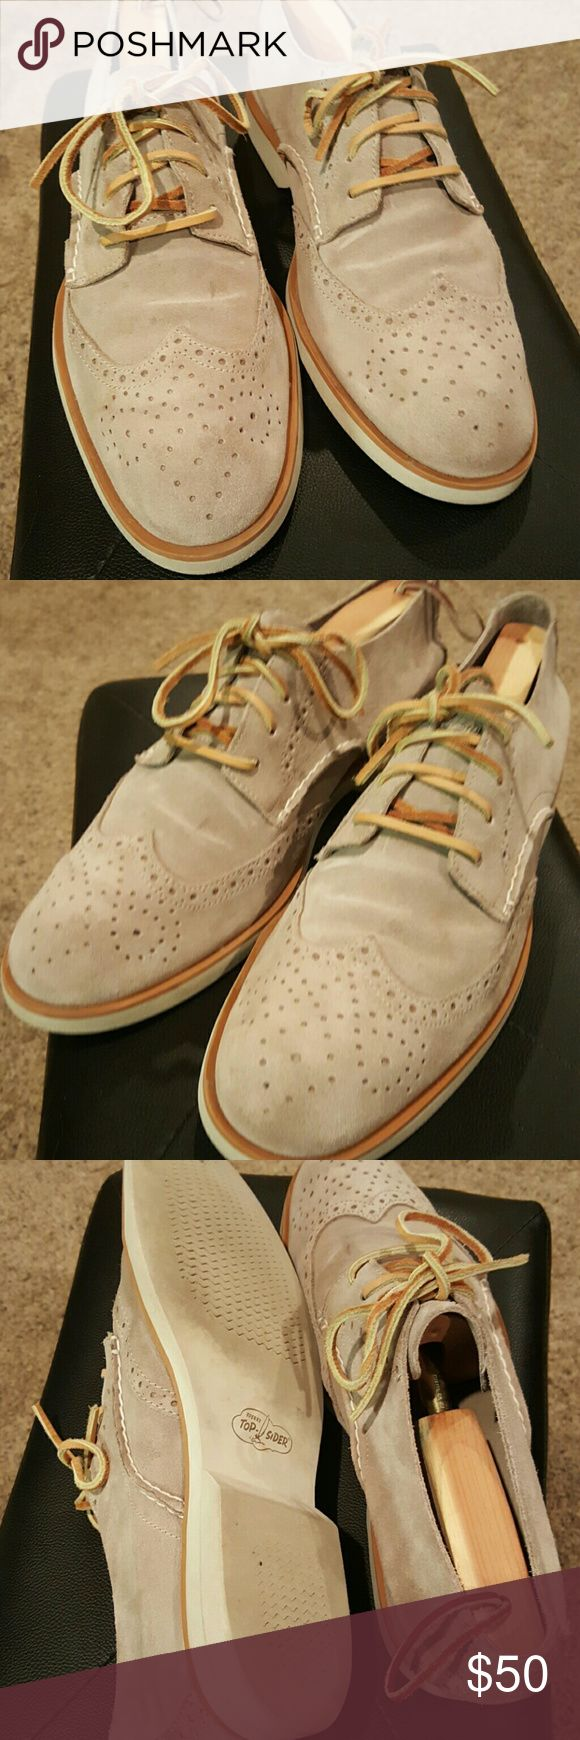 Sperry Top Siders Men's Grey Suede Wingtips Excellent Condition 9/10. Soft grey suede with contrasting White Soles. Lite wear on soles. Size 11 Sperry Top-Sider Shoes Oxfords & Derbys